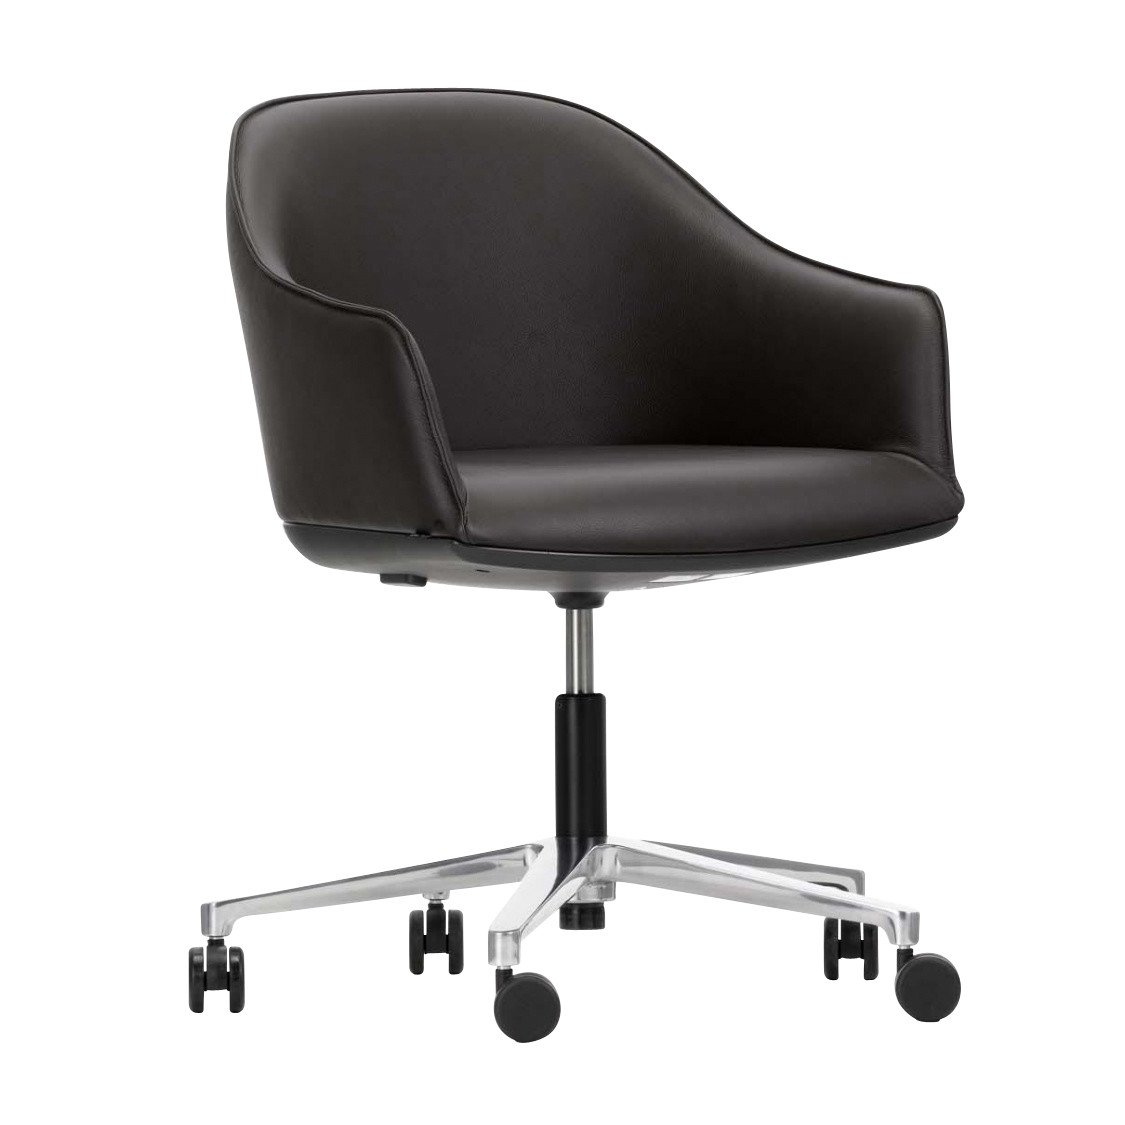 Vitra Softs Chair Office Nero Black Leather Frame